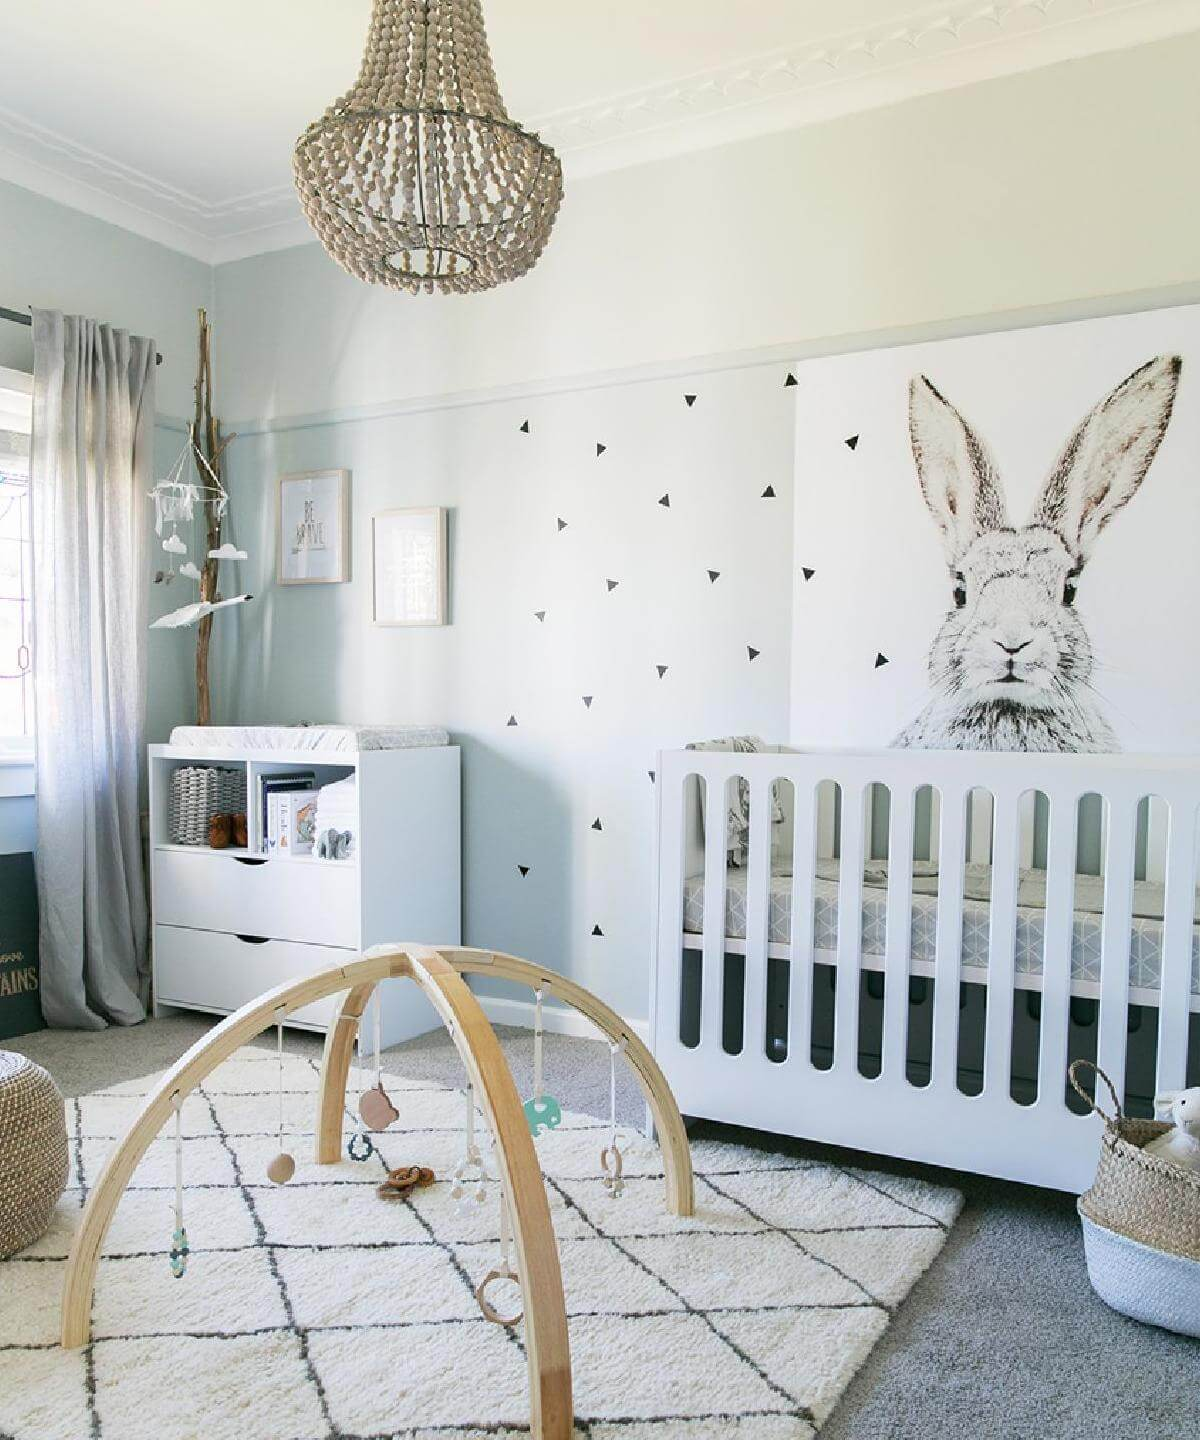 17 Adorable Ways To Decorate Above A Baby Crib: 35+ Best Nursery Decor Ideas And Designs For 2017